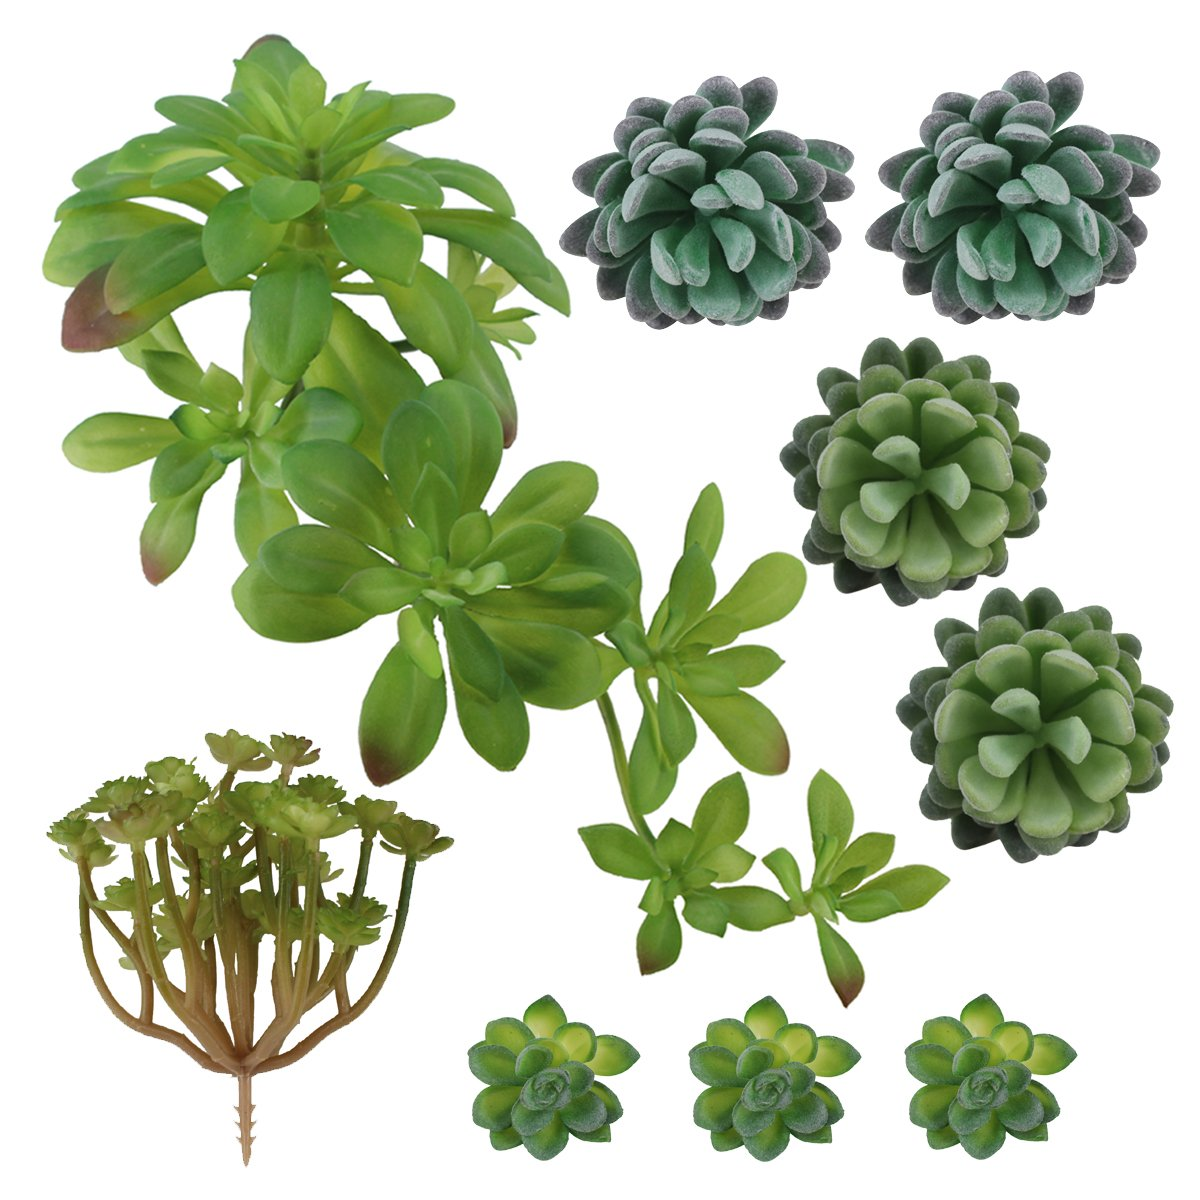 Greatflower DR208 Pack of 9 Artificial Succulents DIY Materials for Hotel or Desk Decor